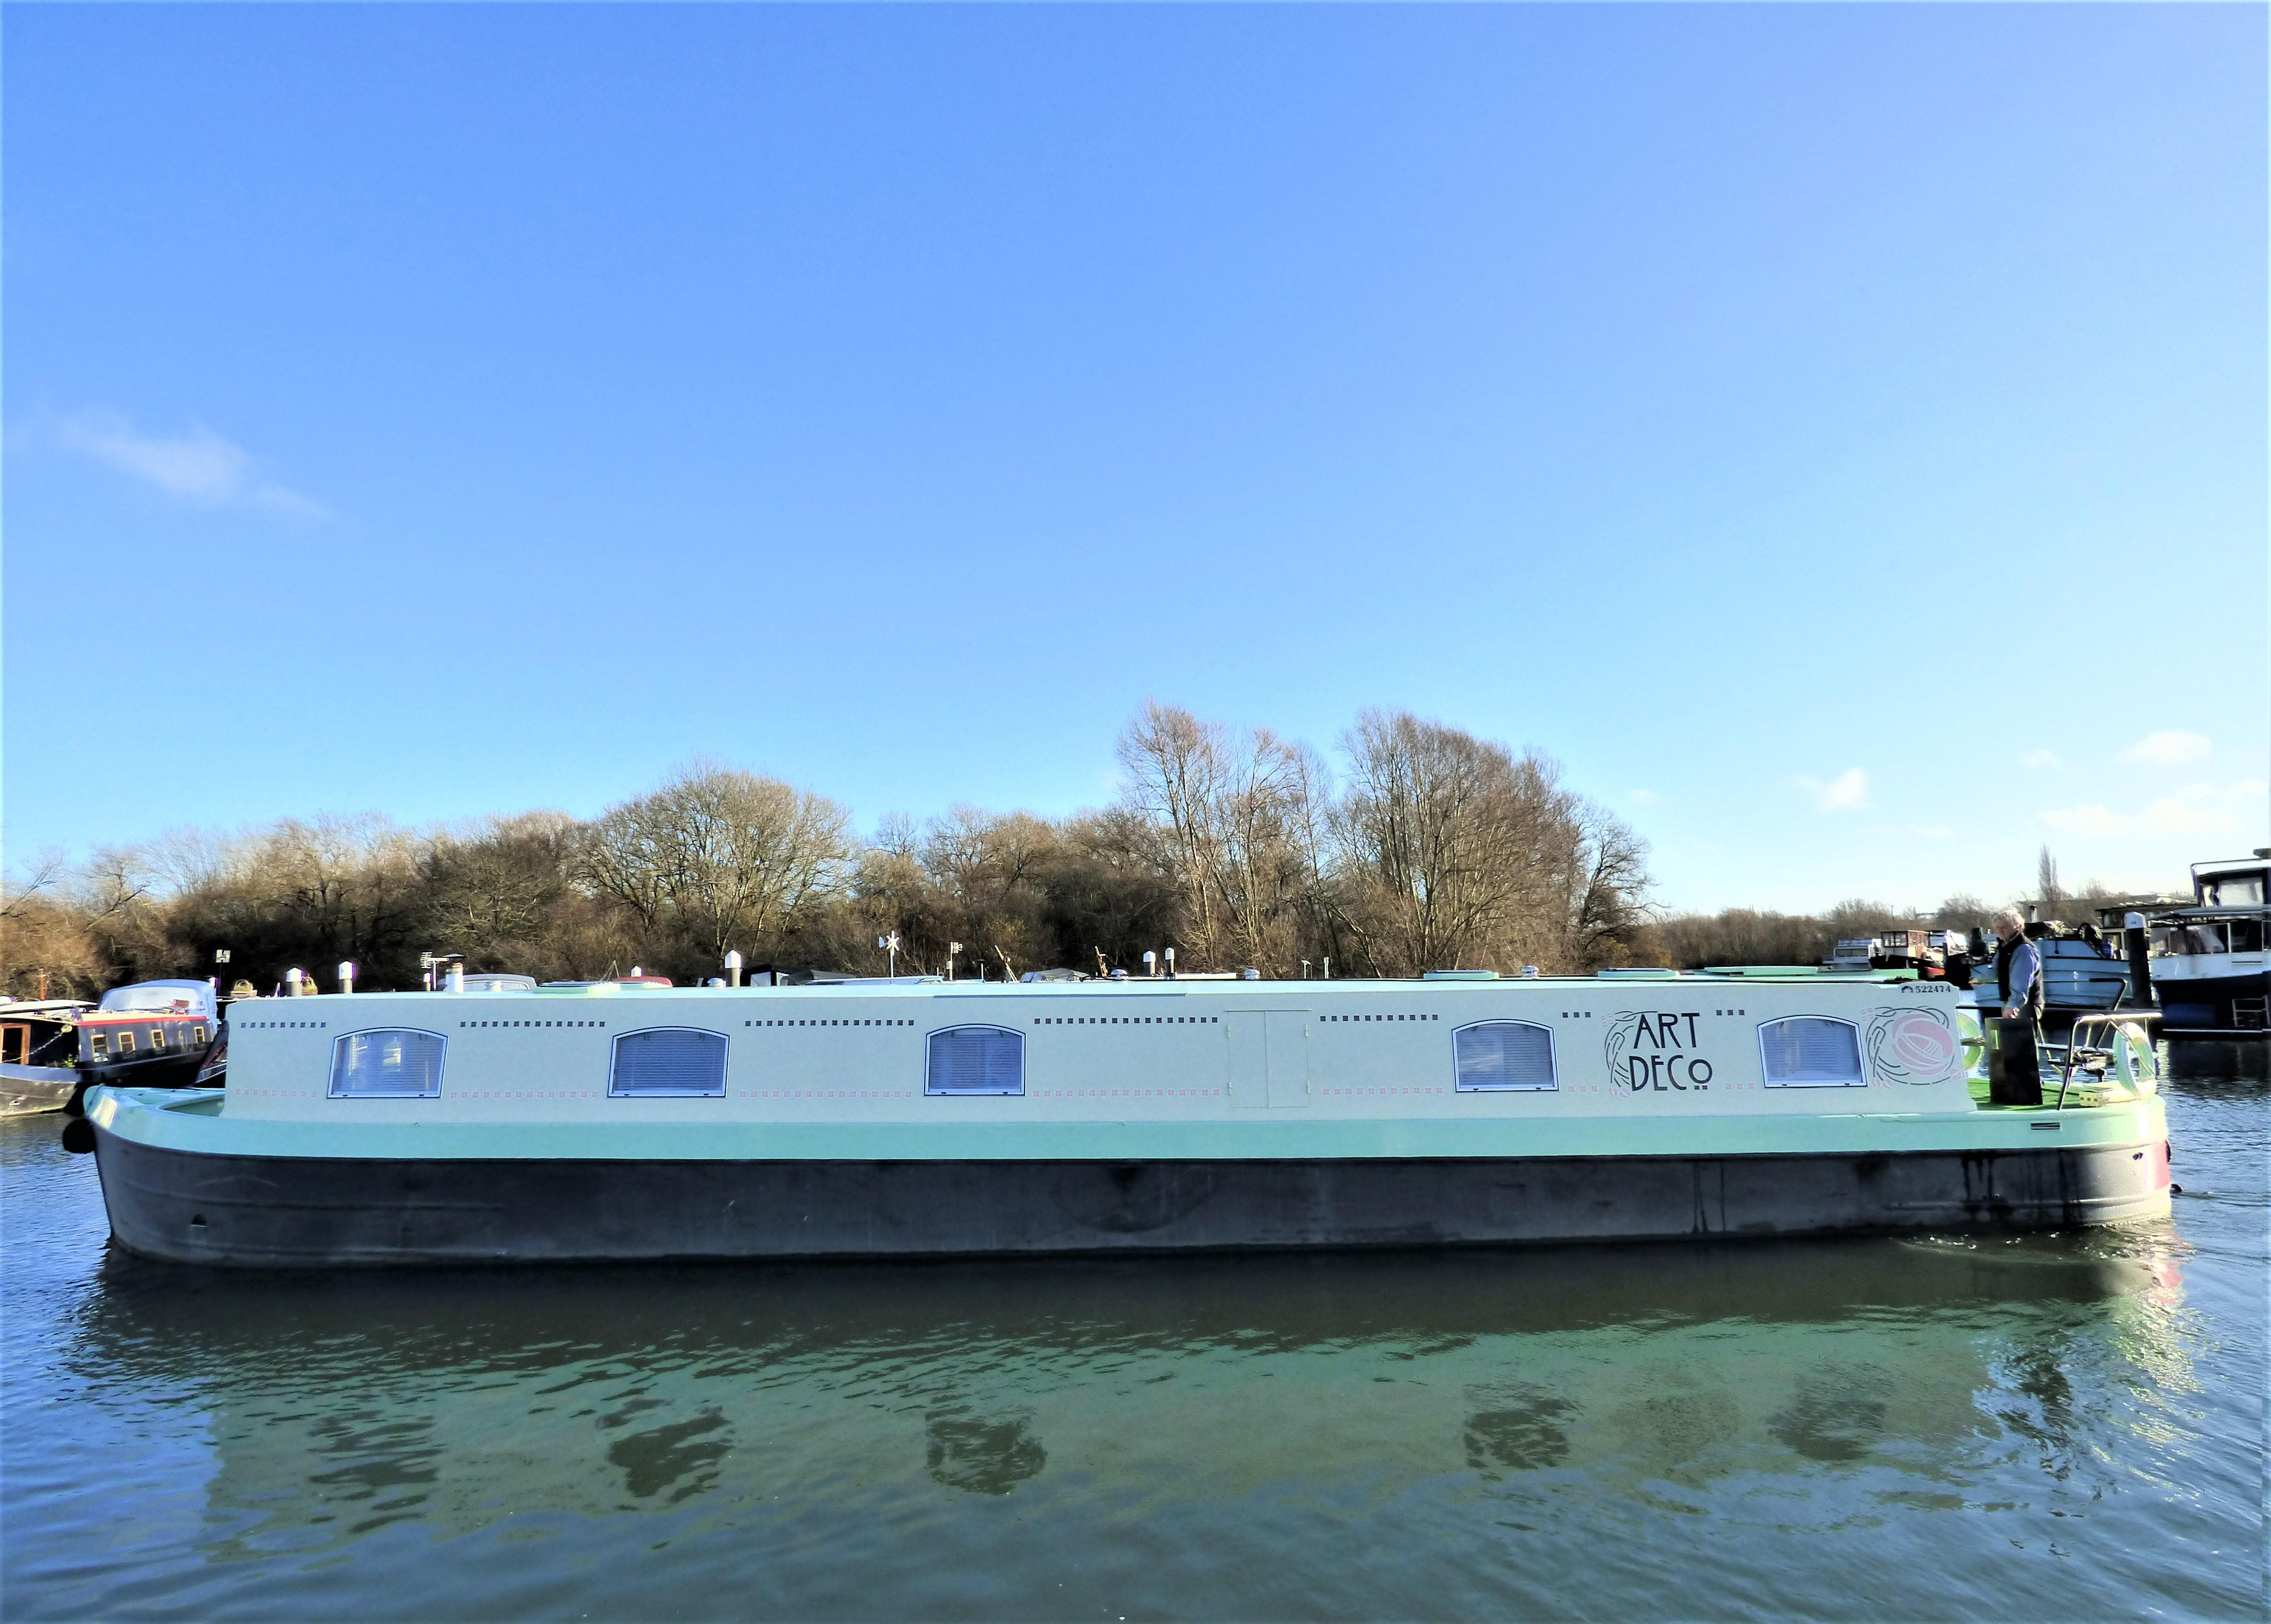 Wide Beam Narrowboat 60 x 12 Narrowboats of Staffordshire shell - Fit out by Beardall Marine